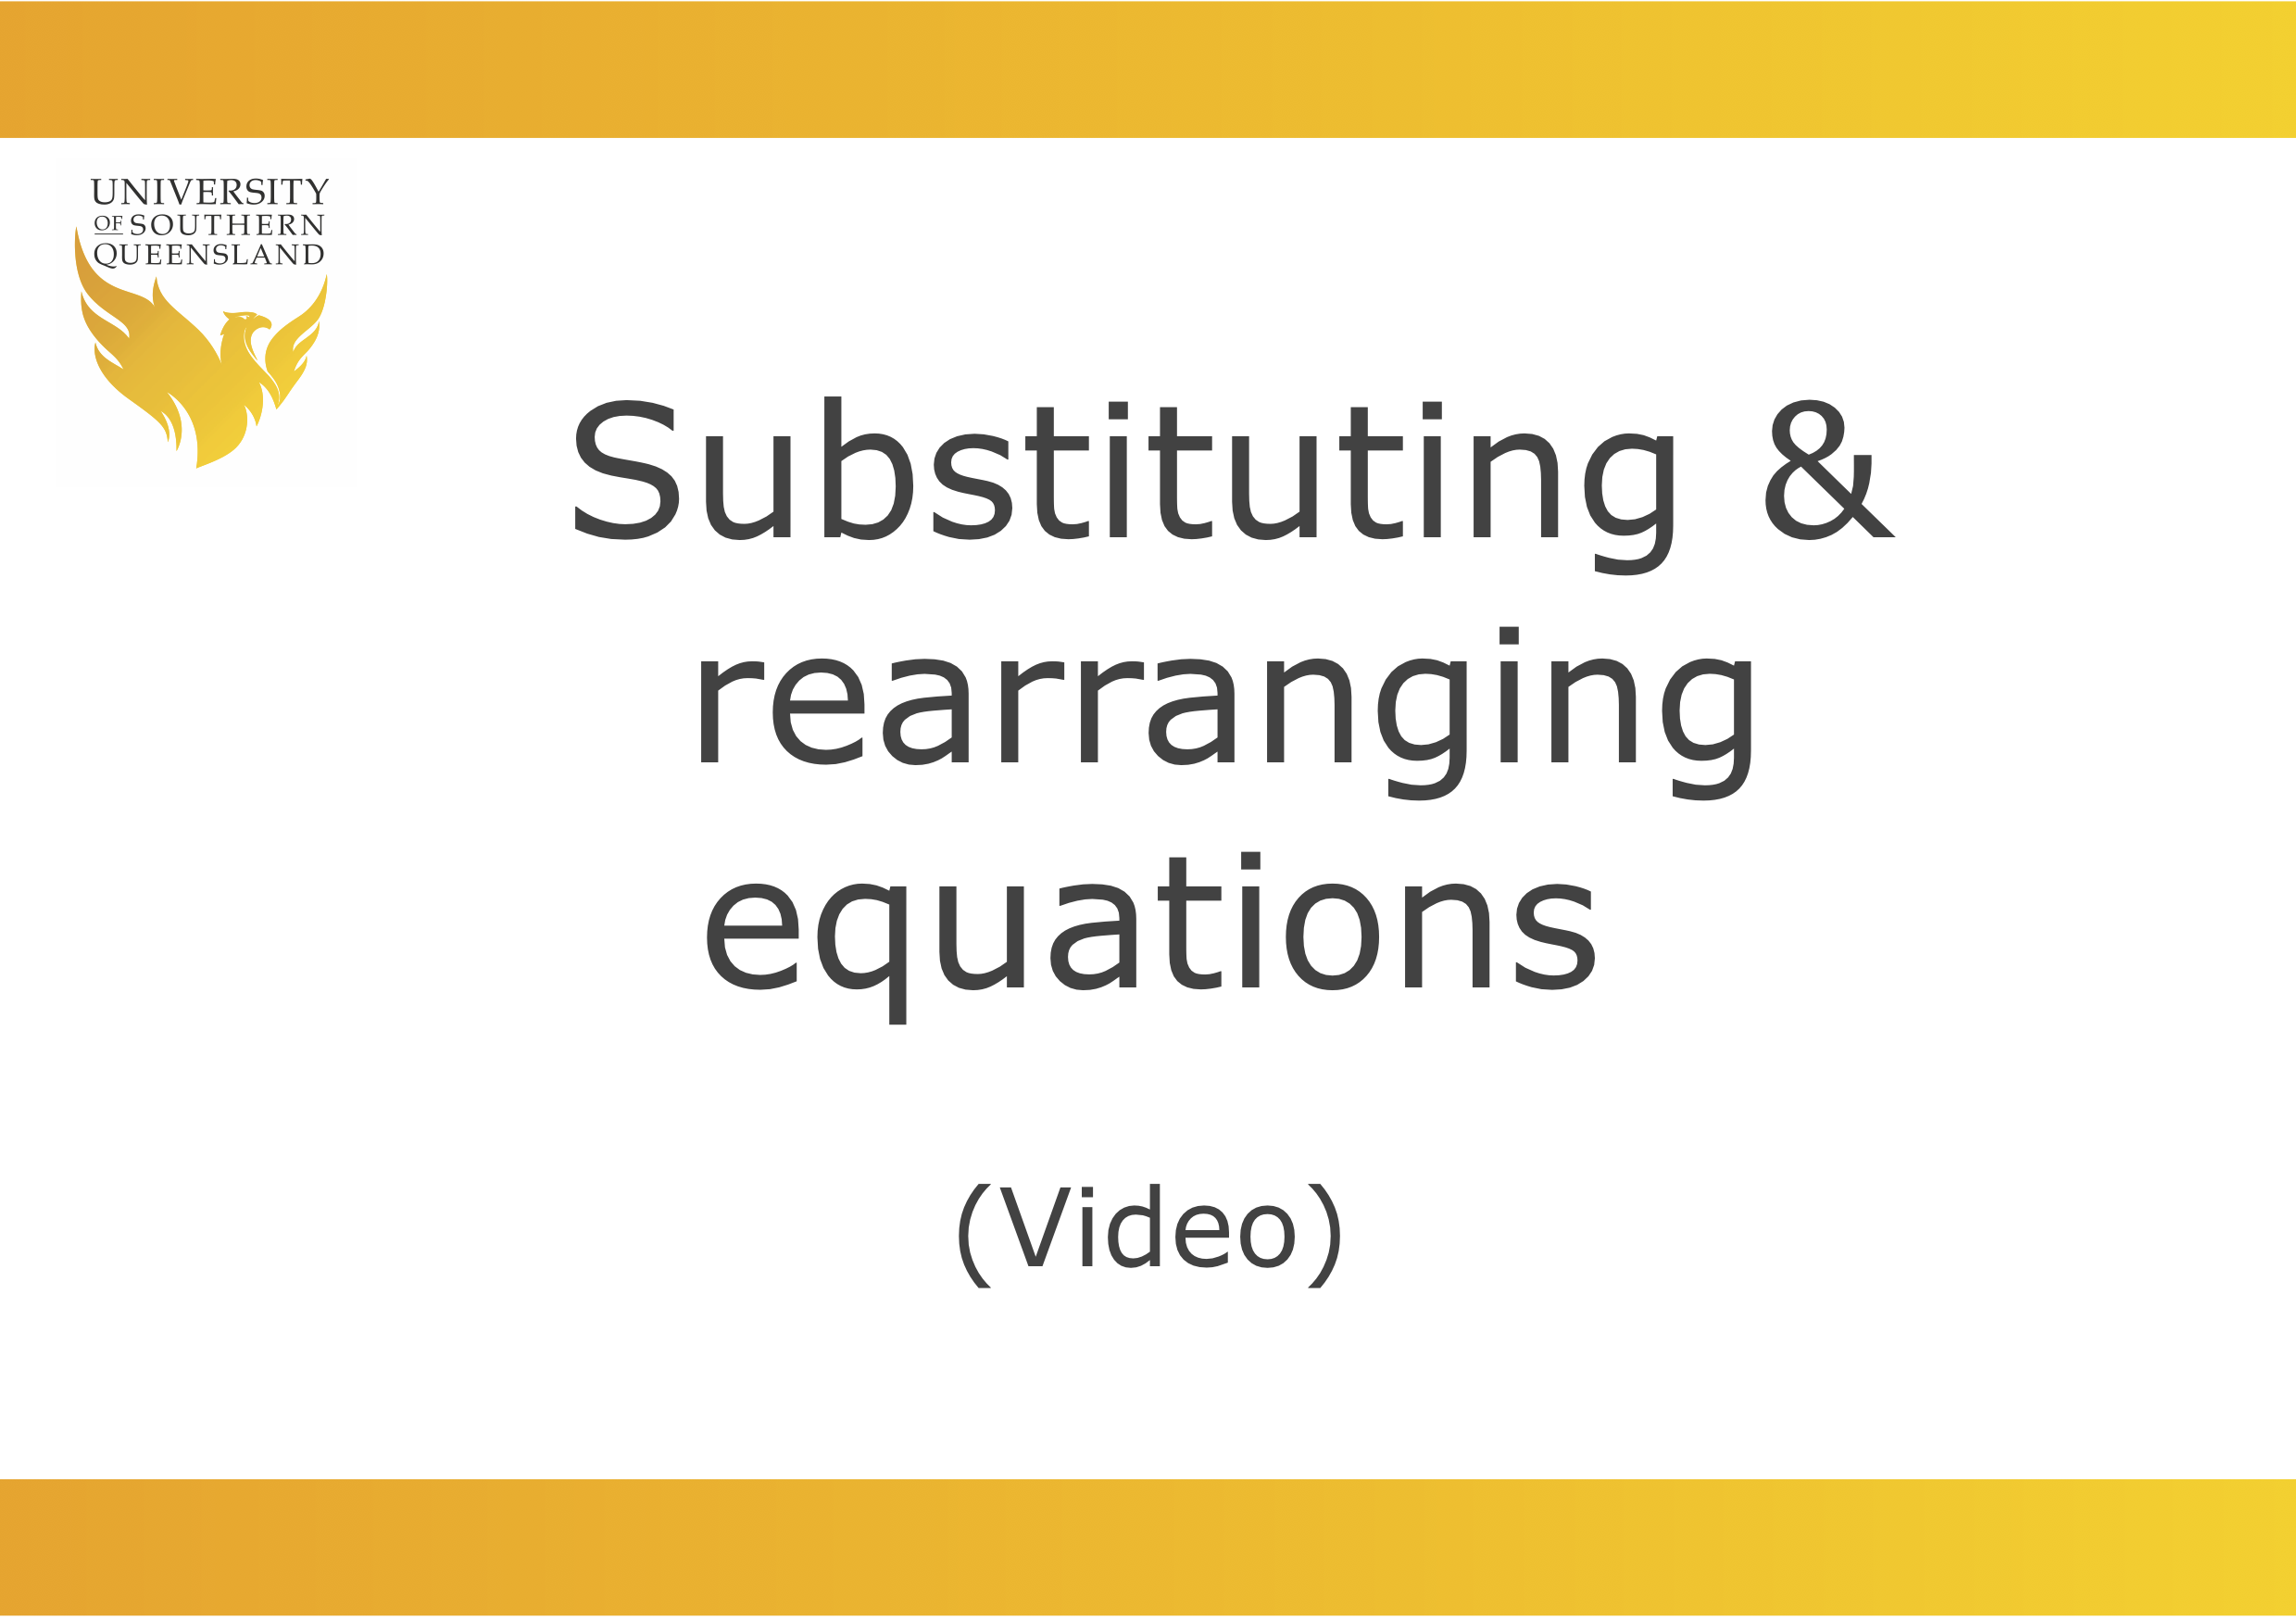 Click on the video to play the substituting and rearranging equations video.